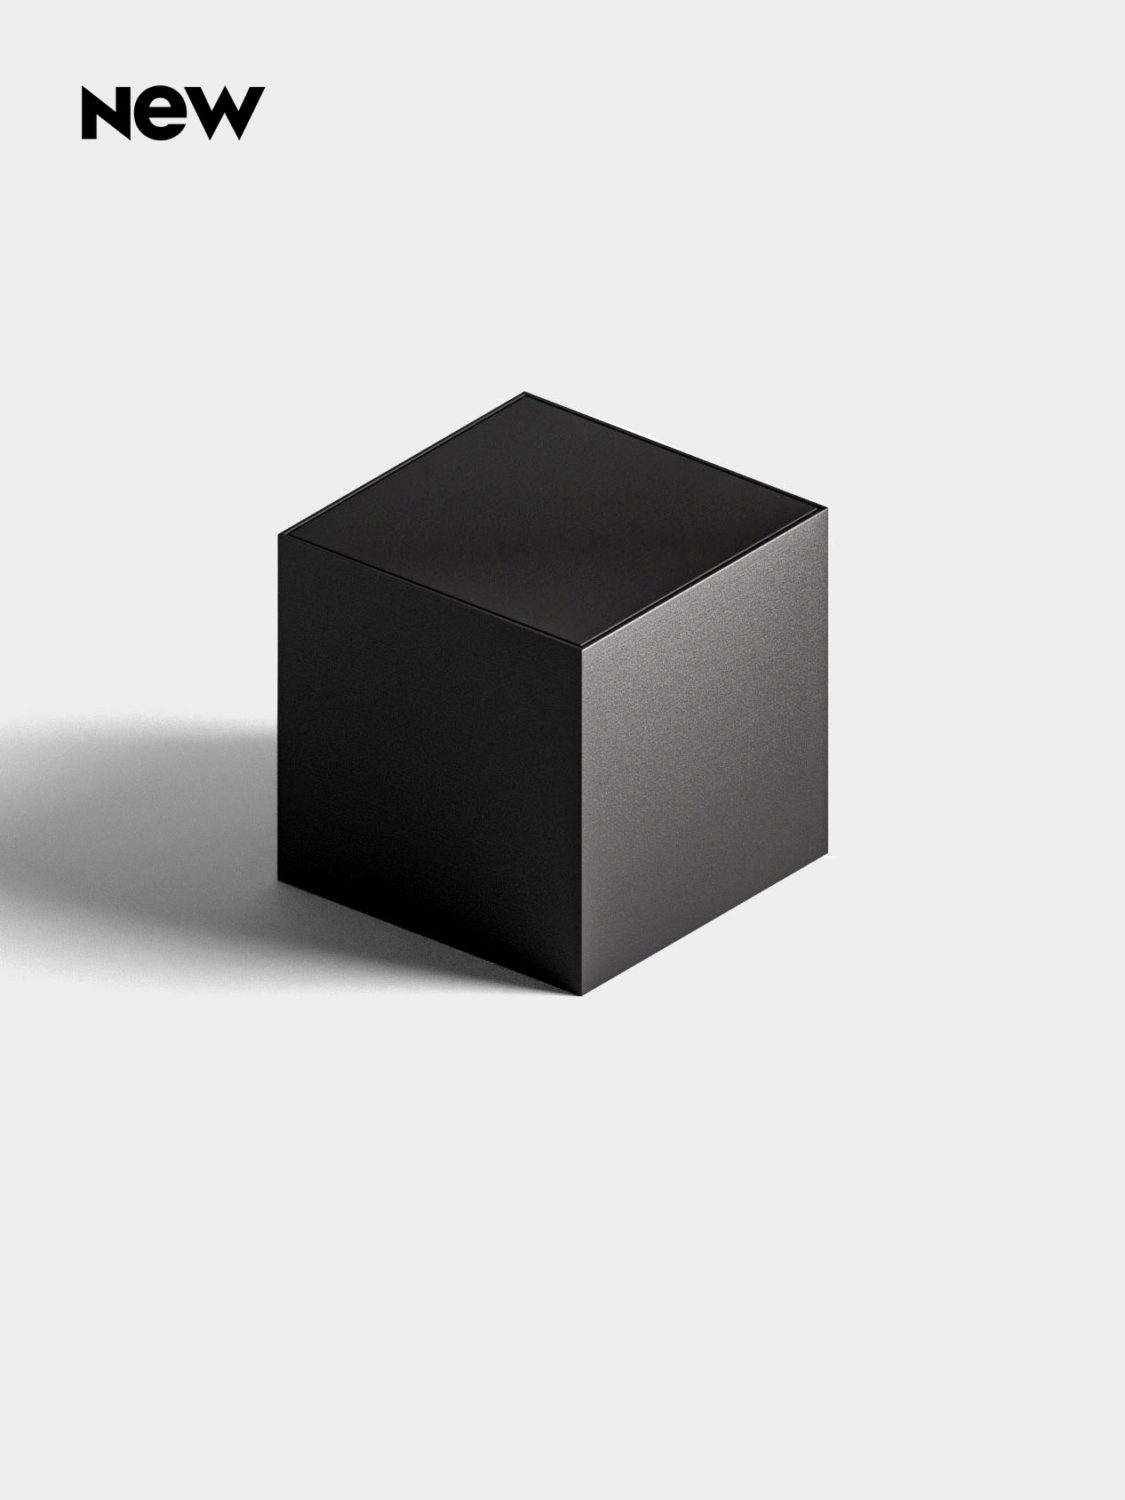 Hide things in a Cube v2